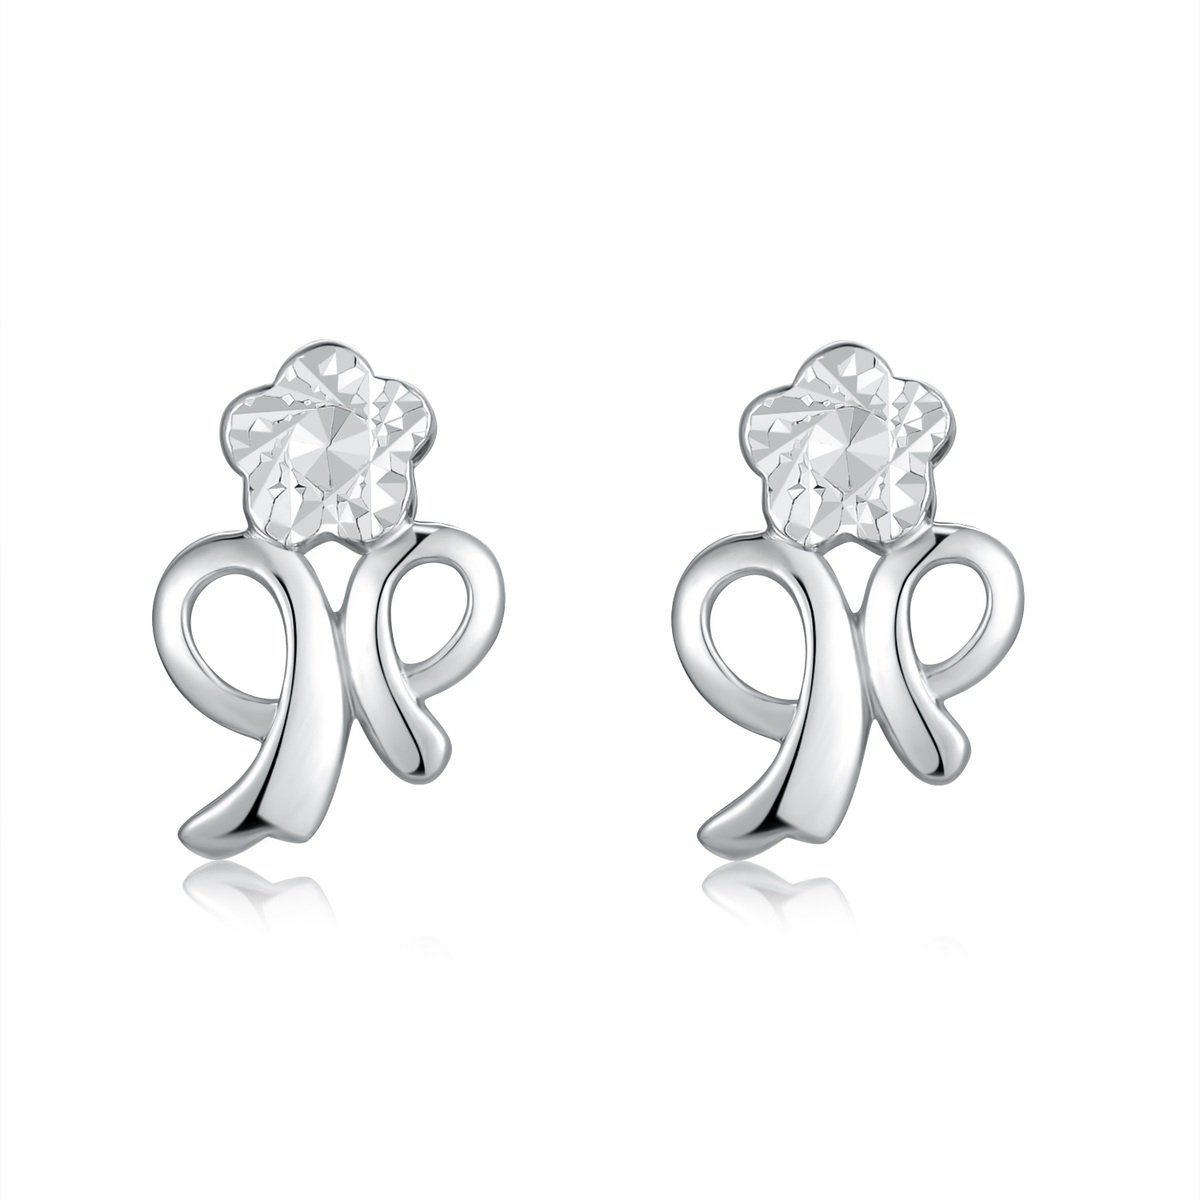 14K/585 White Gold Little Flower Diamond Cut Earrings